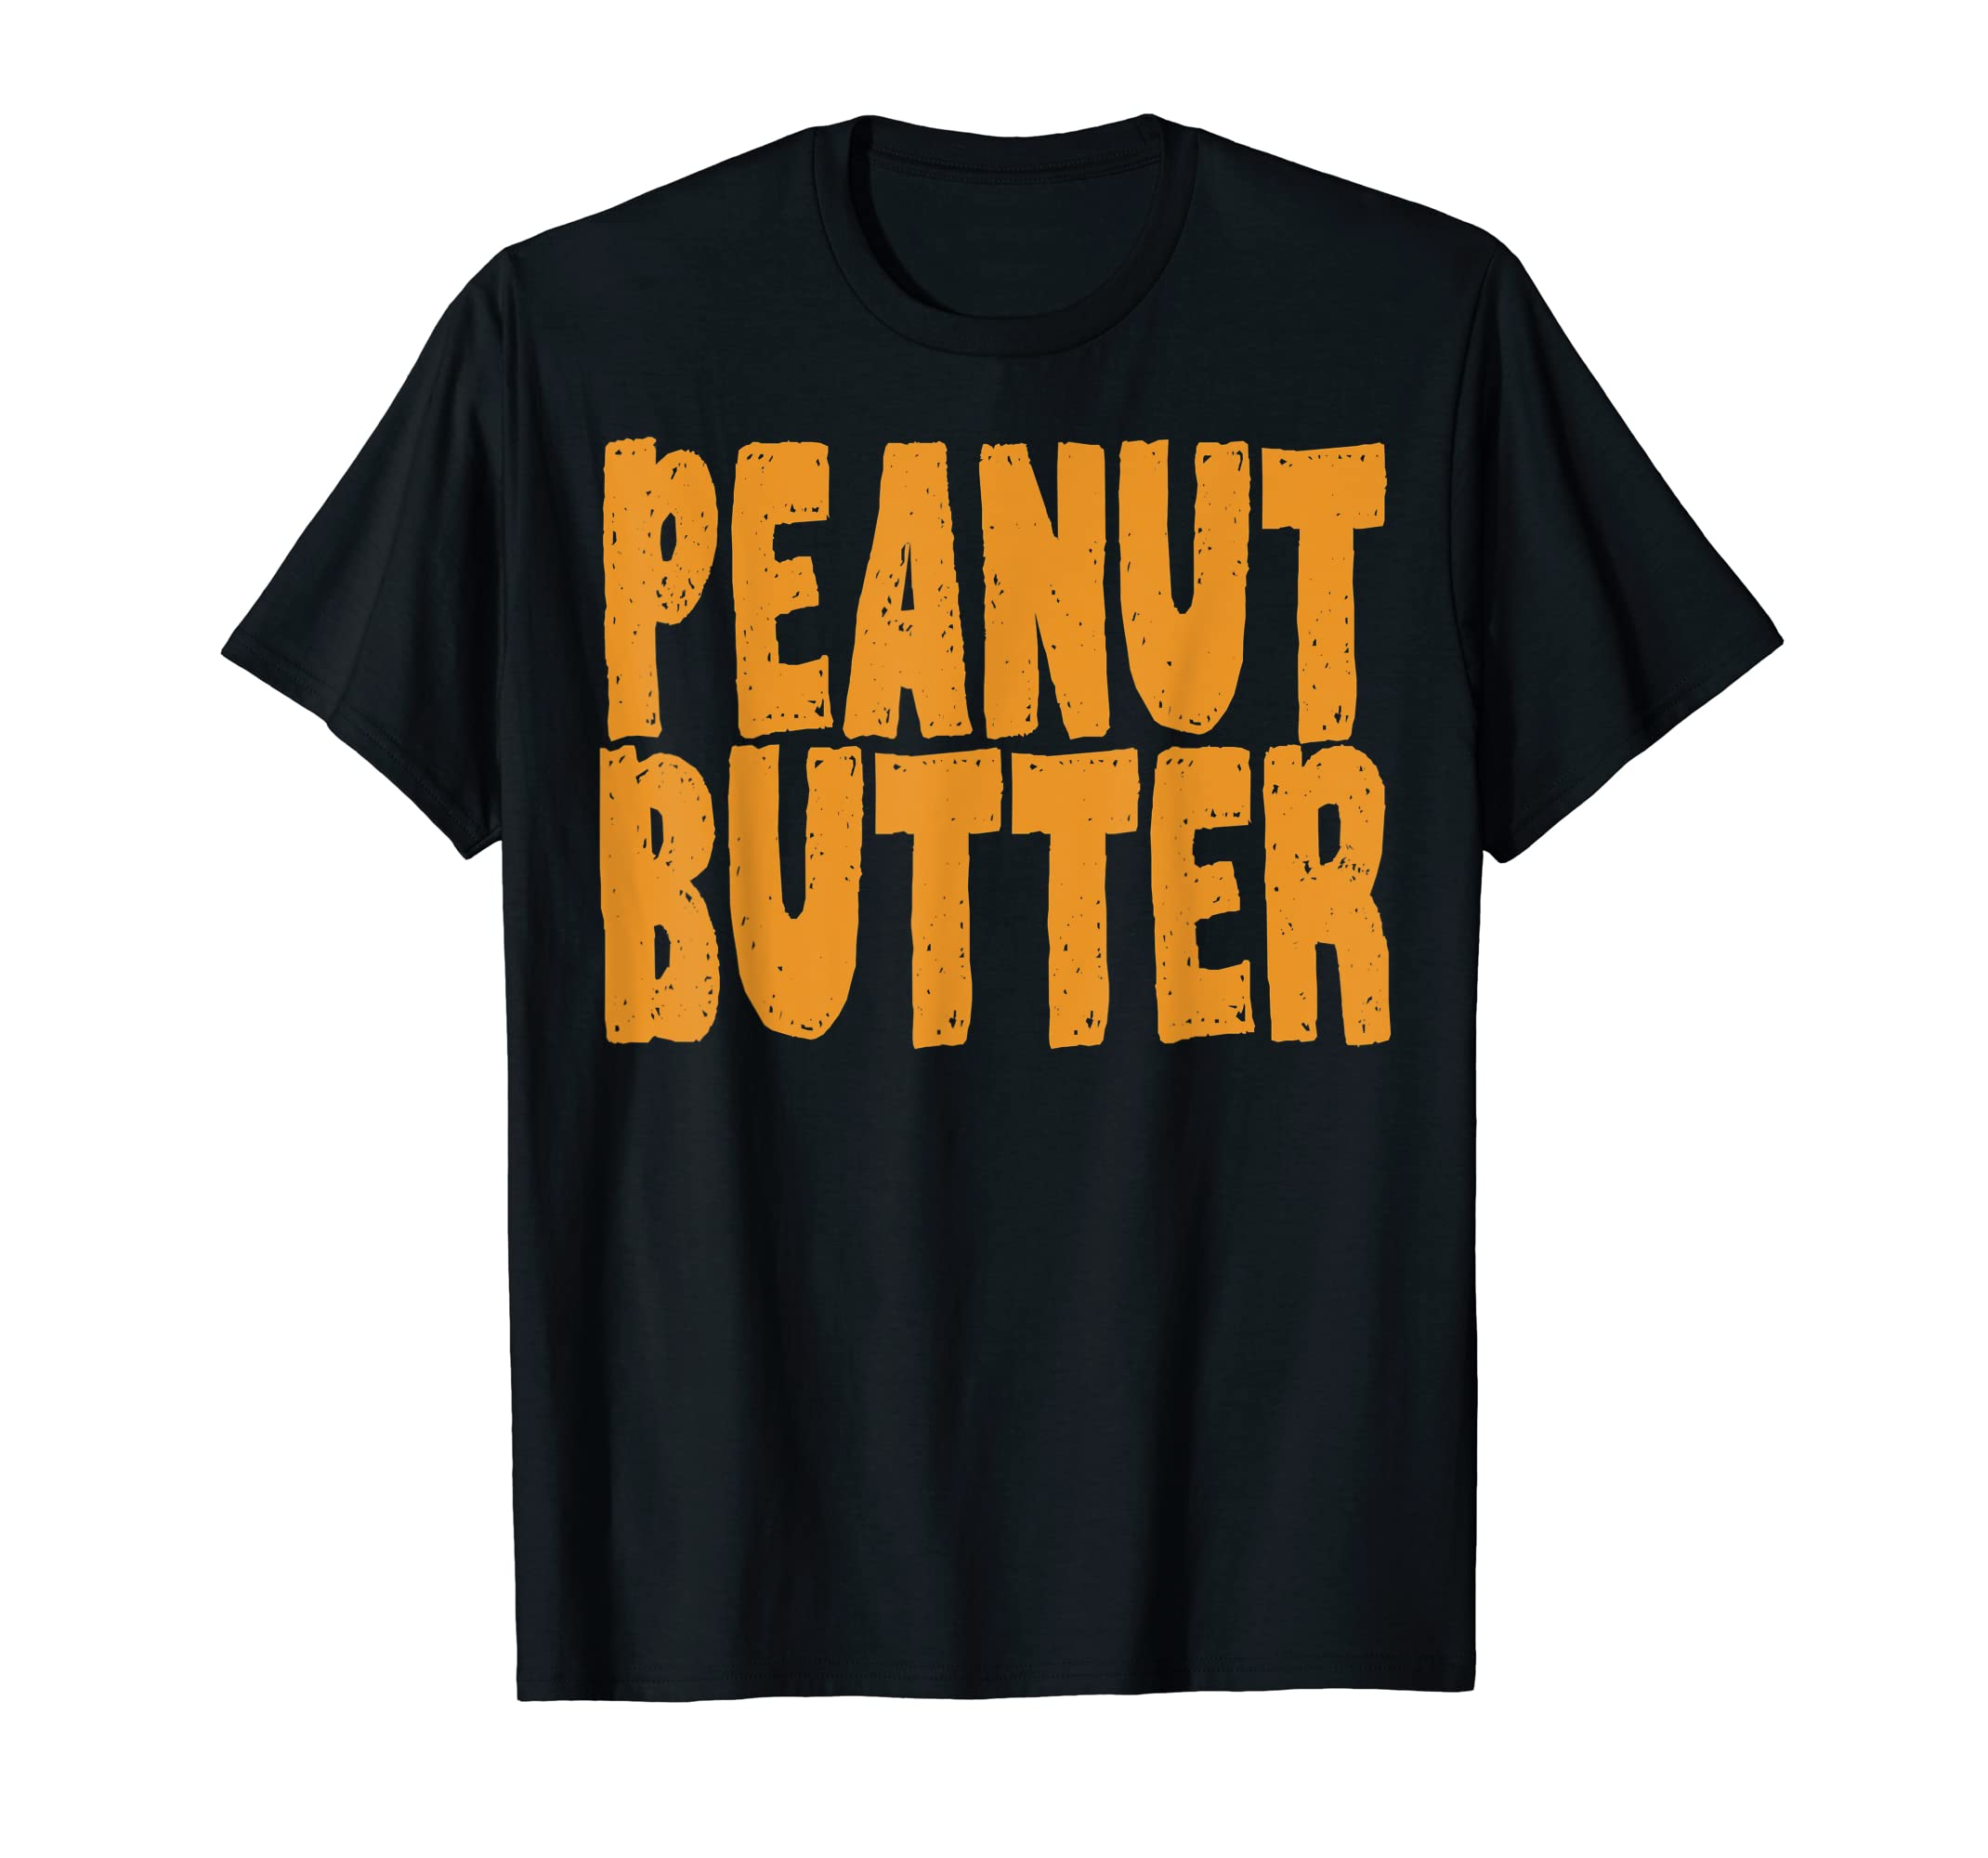 Peanut Butter T-Shirt Jelly Couples Friends Halloween Shirt-Men's T-Shirt-Black